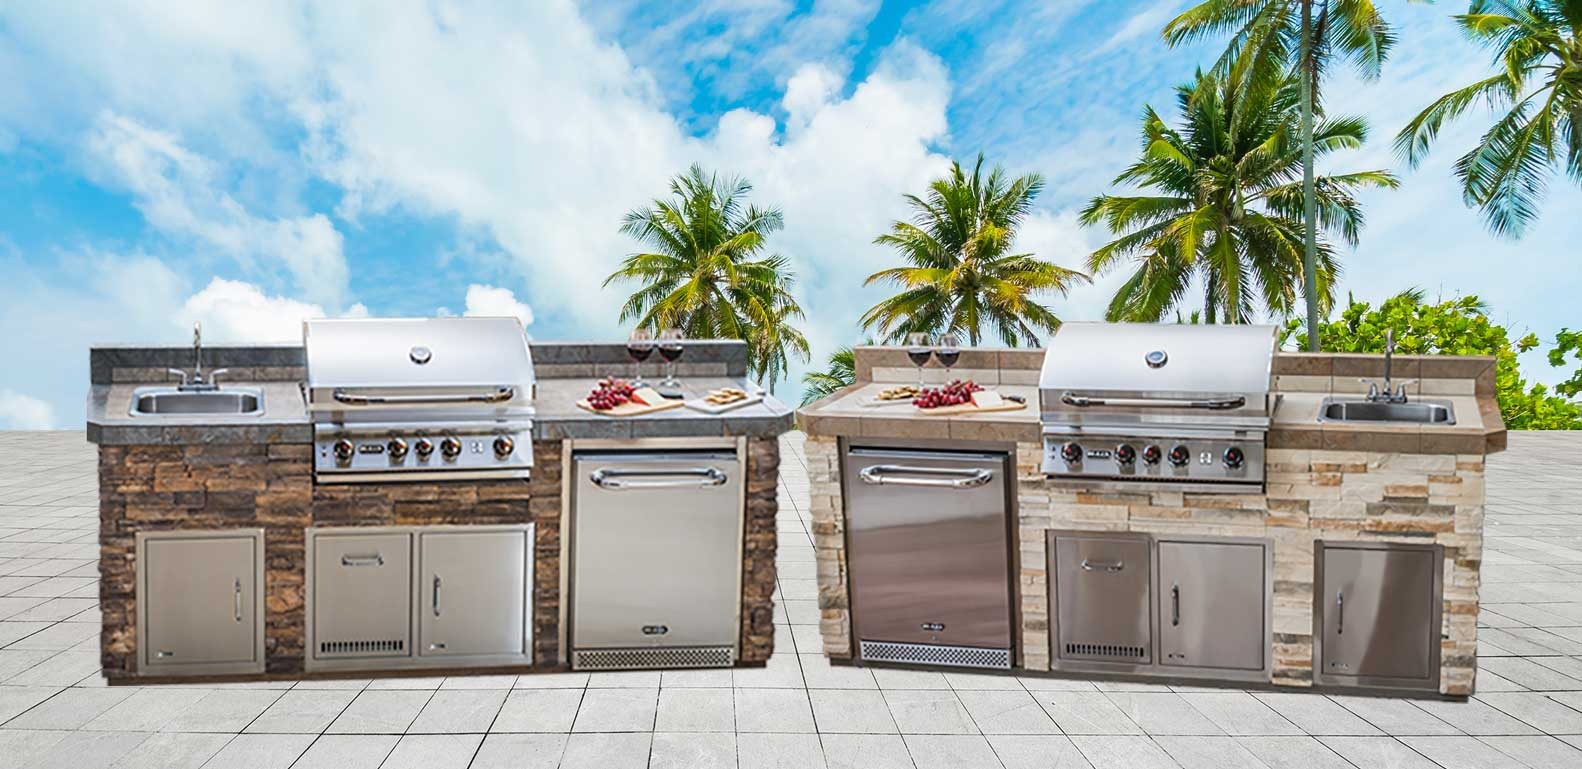 "Boca Grande Designer Outdoor Kitchen Model ""The Resort Collection"" Layout and Color Options from The Recreational Warehouse Southwest Florida's Leading Warehouse for Spas, Hot Tubs, Pool Heaters, Pool Supplies, Outdoor Kitchens and more!"